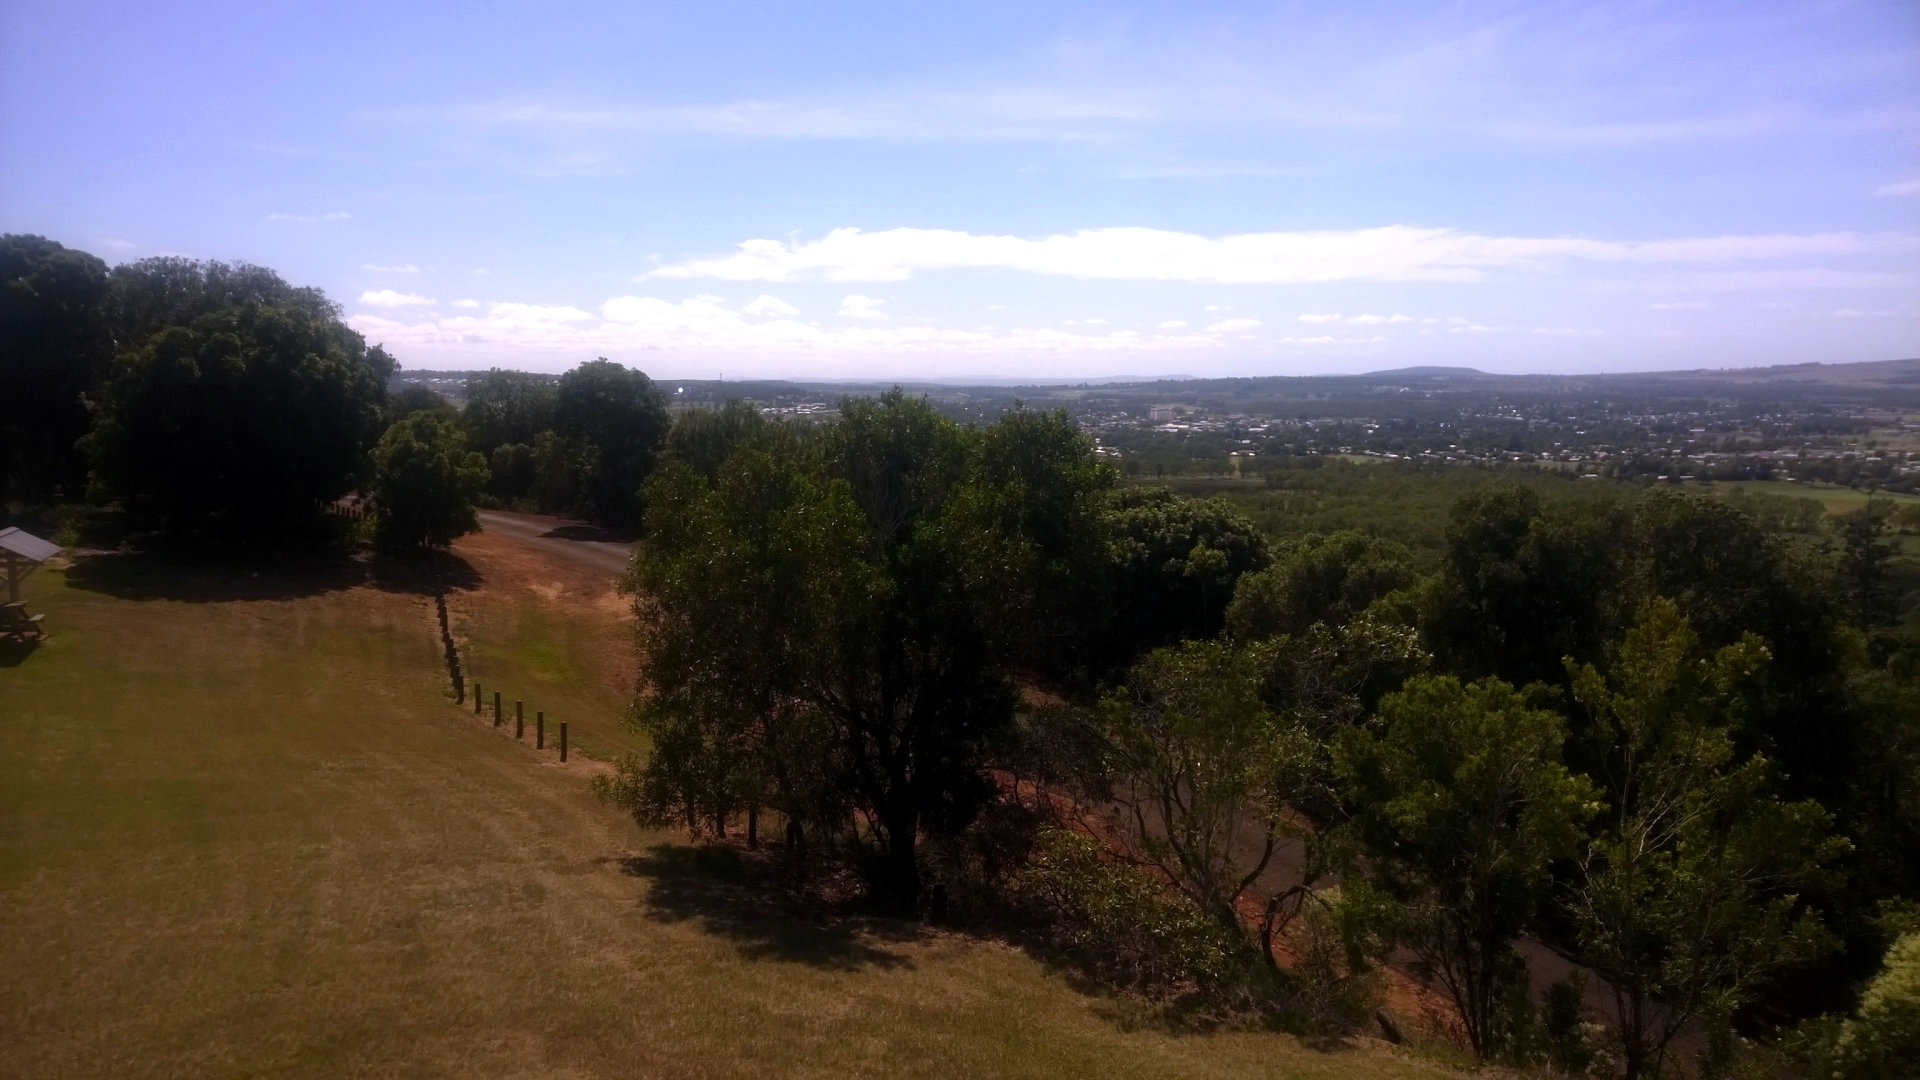 View from Mount Wooroolin Lookout looking towards Kingaroy. The lookout is just over 4km west of Kingaroy, park at the lookout or walk the trail from below the mountain to the top